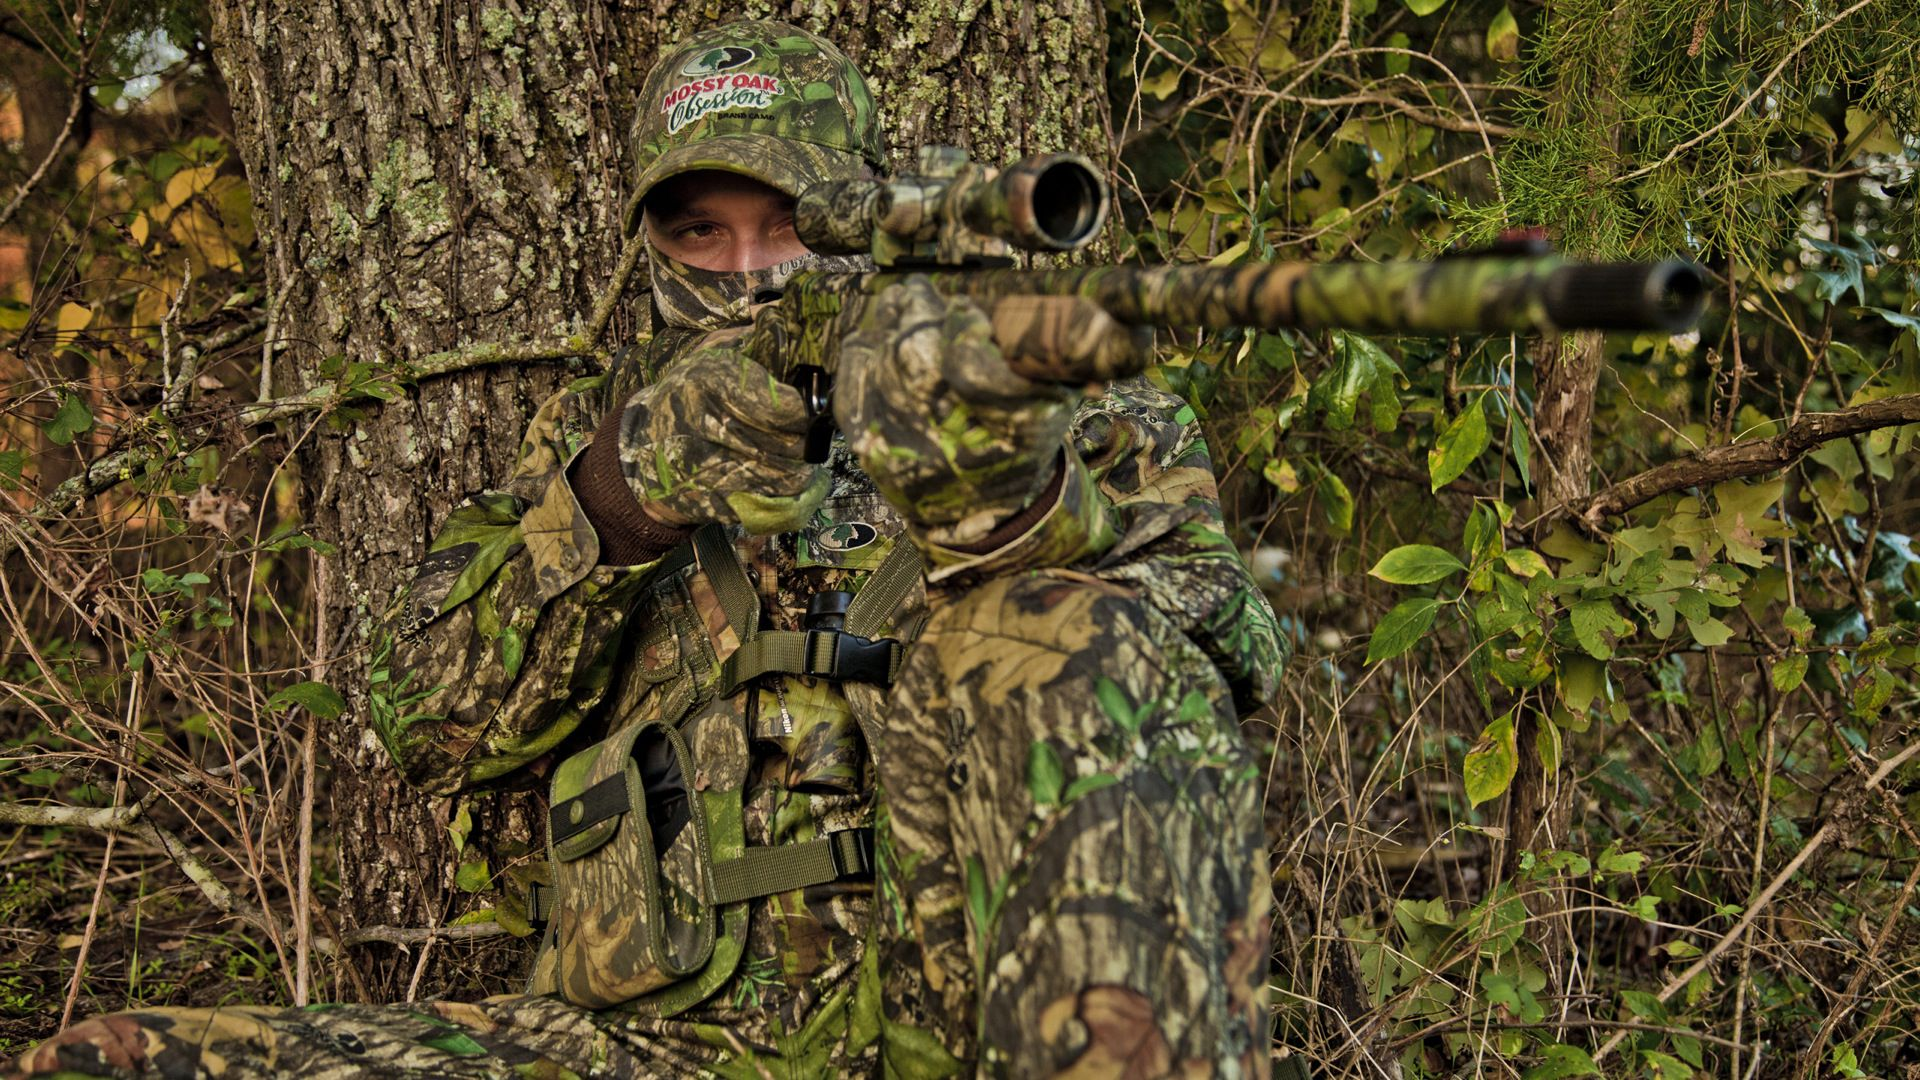 Best Wallpaper Logo Realtree - Realtree-Camo-Images-PIC-MCH098068  Perfect Image Reference_297235.jpg